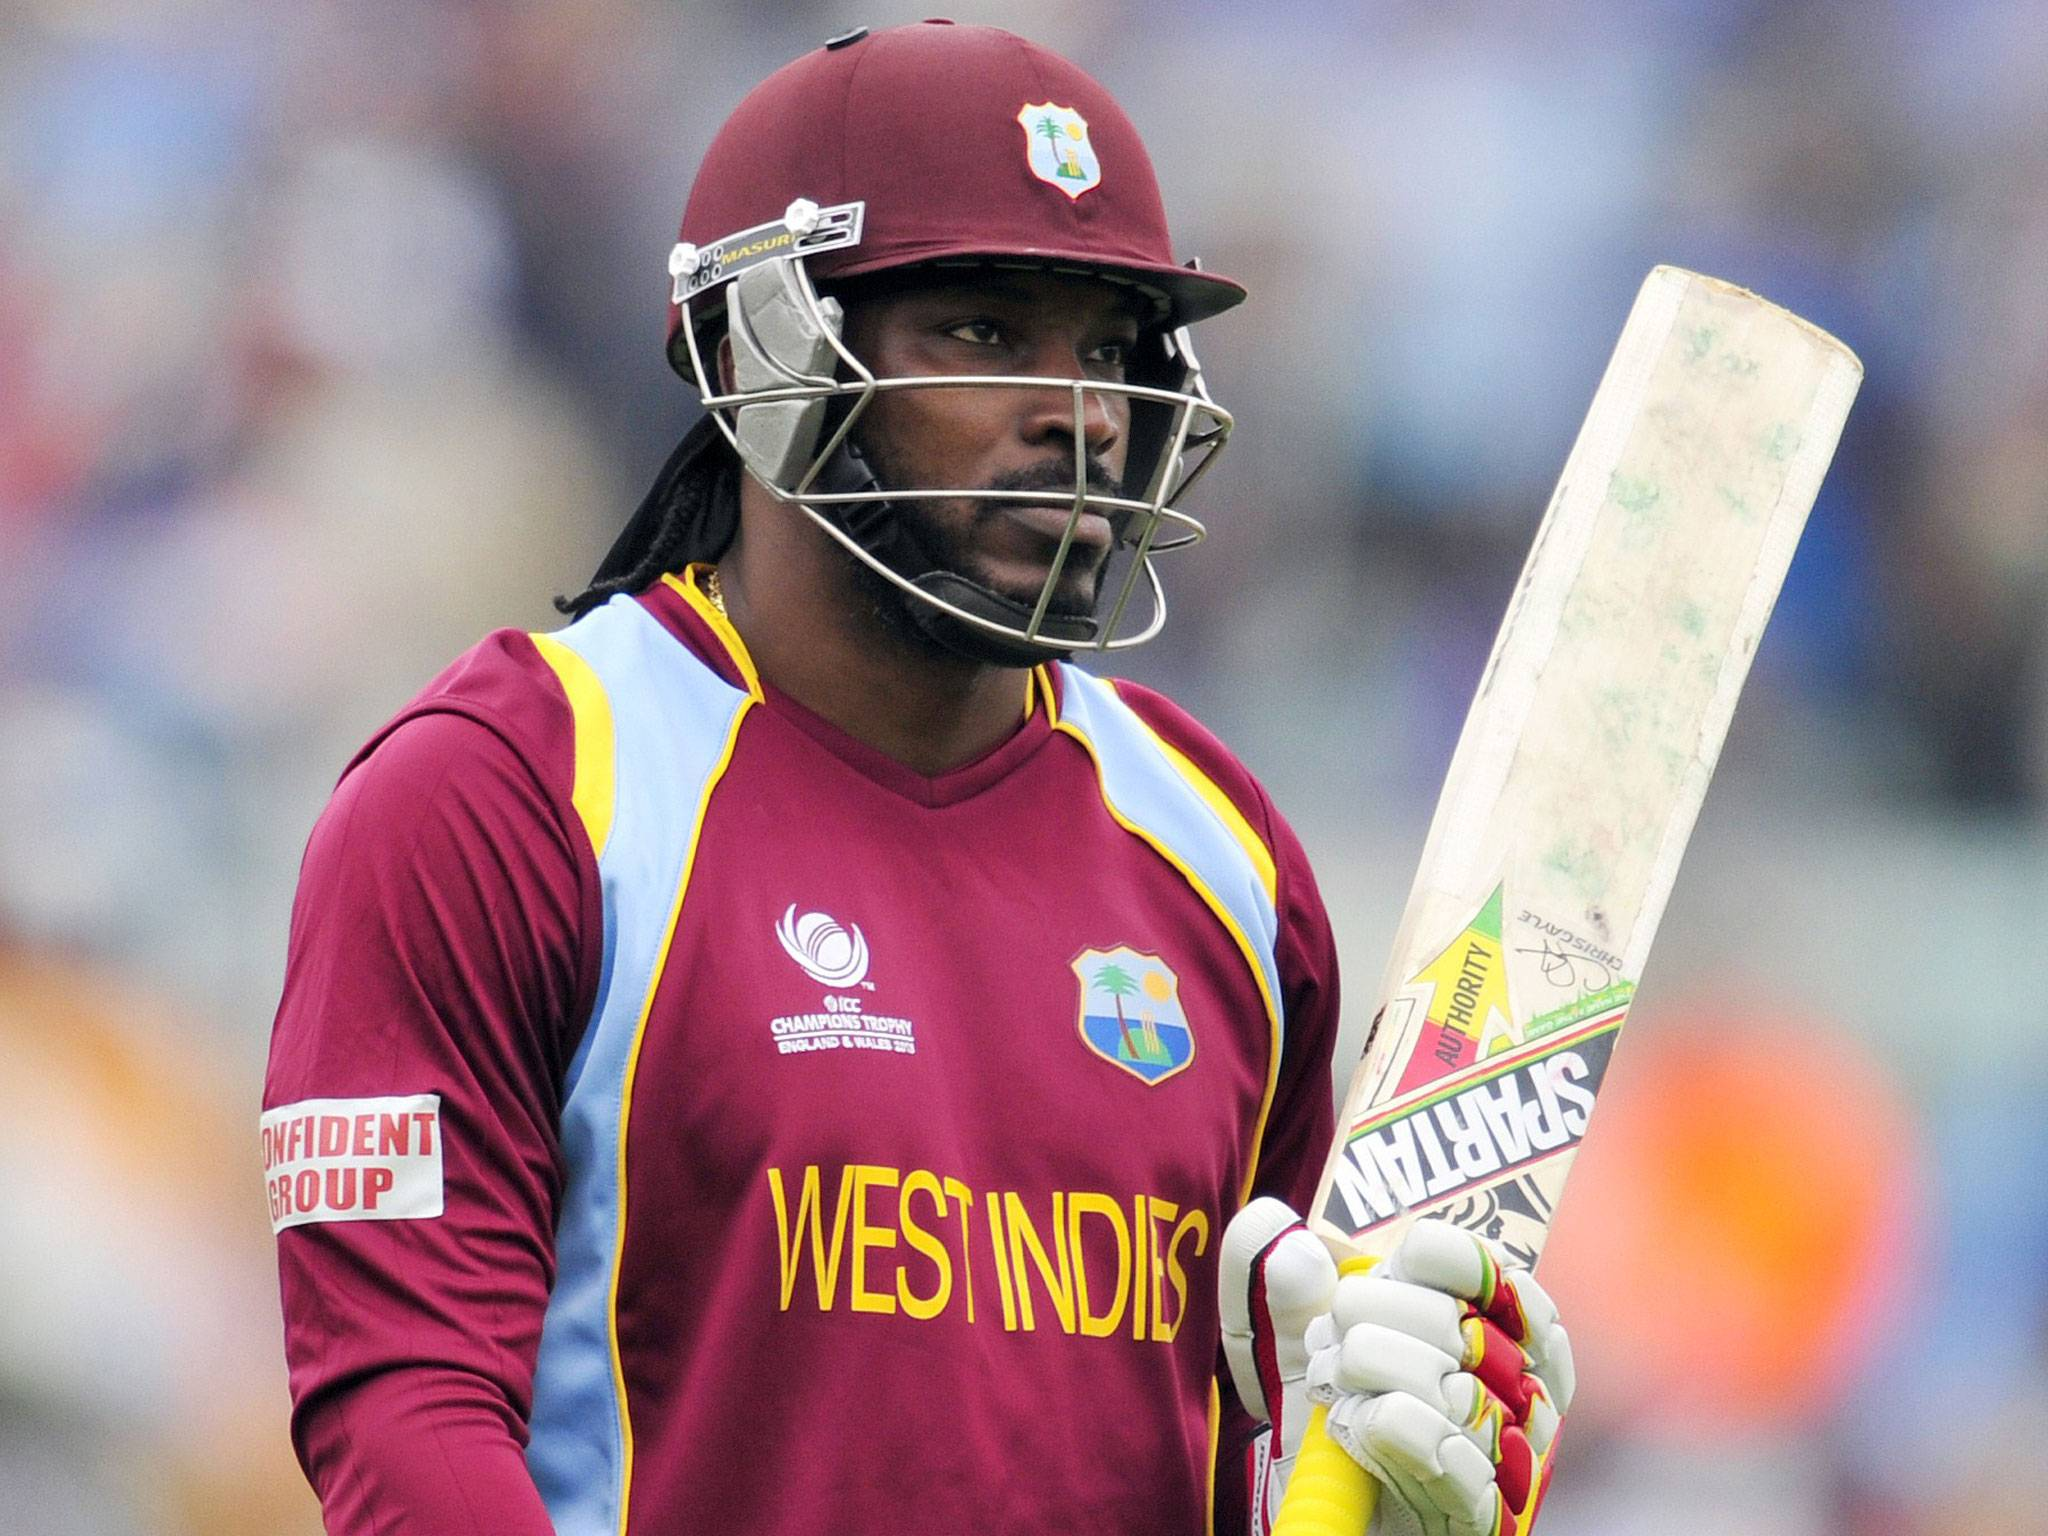 chris gayle, cricket match india vs west indies, cricket world cup, icc world cup live match, india captain mahendra singh dhoni, indian cricket match, indian cricket team, Mahendra Singh Dhoni, ms dhoni, west indies cricket